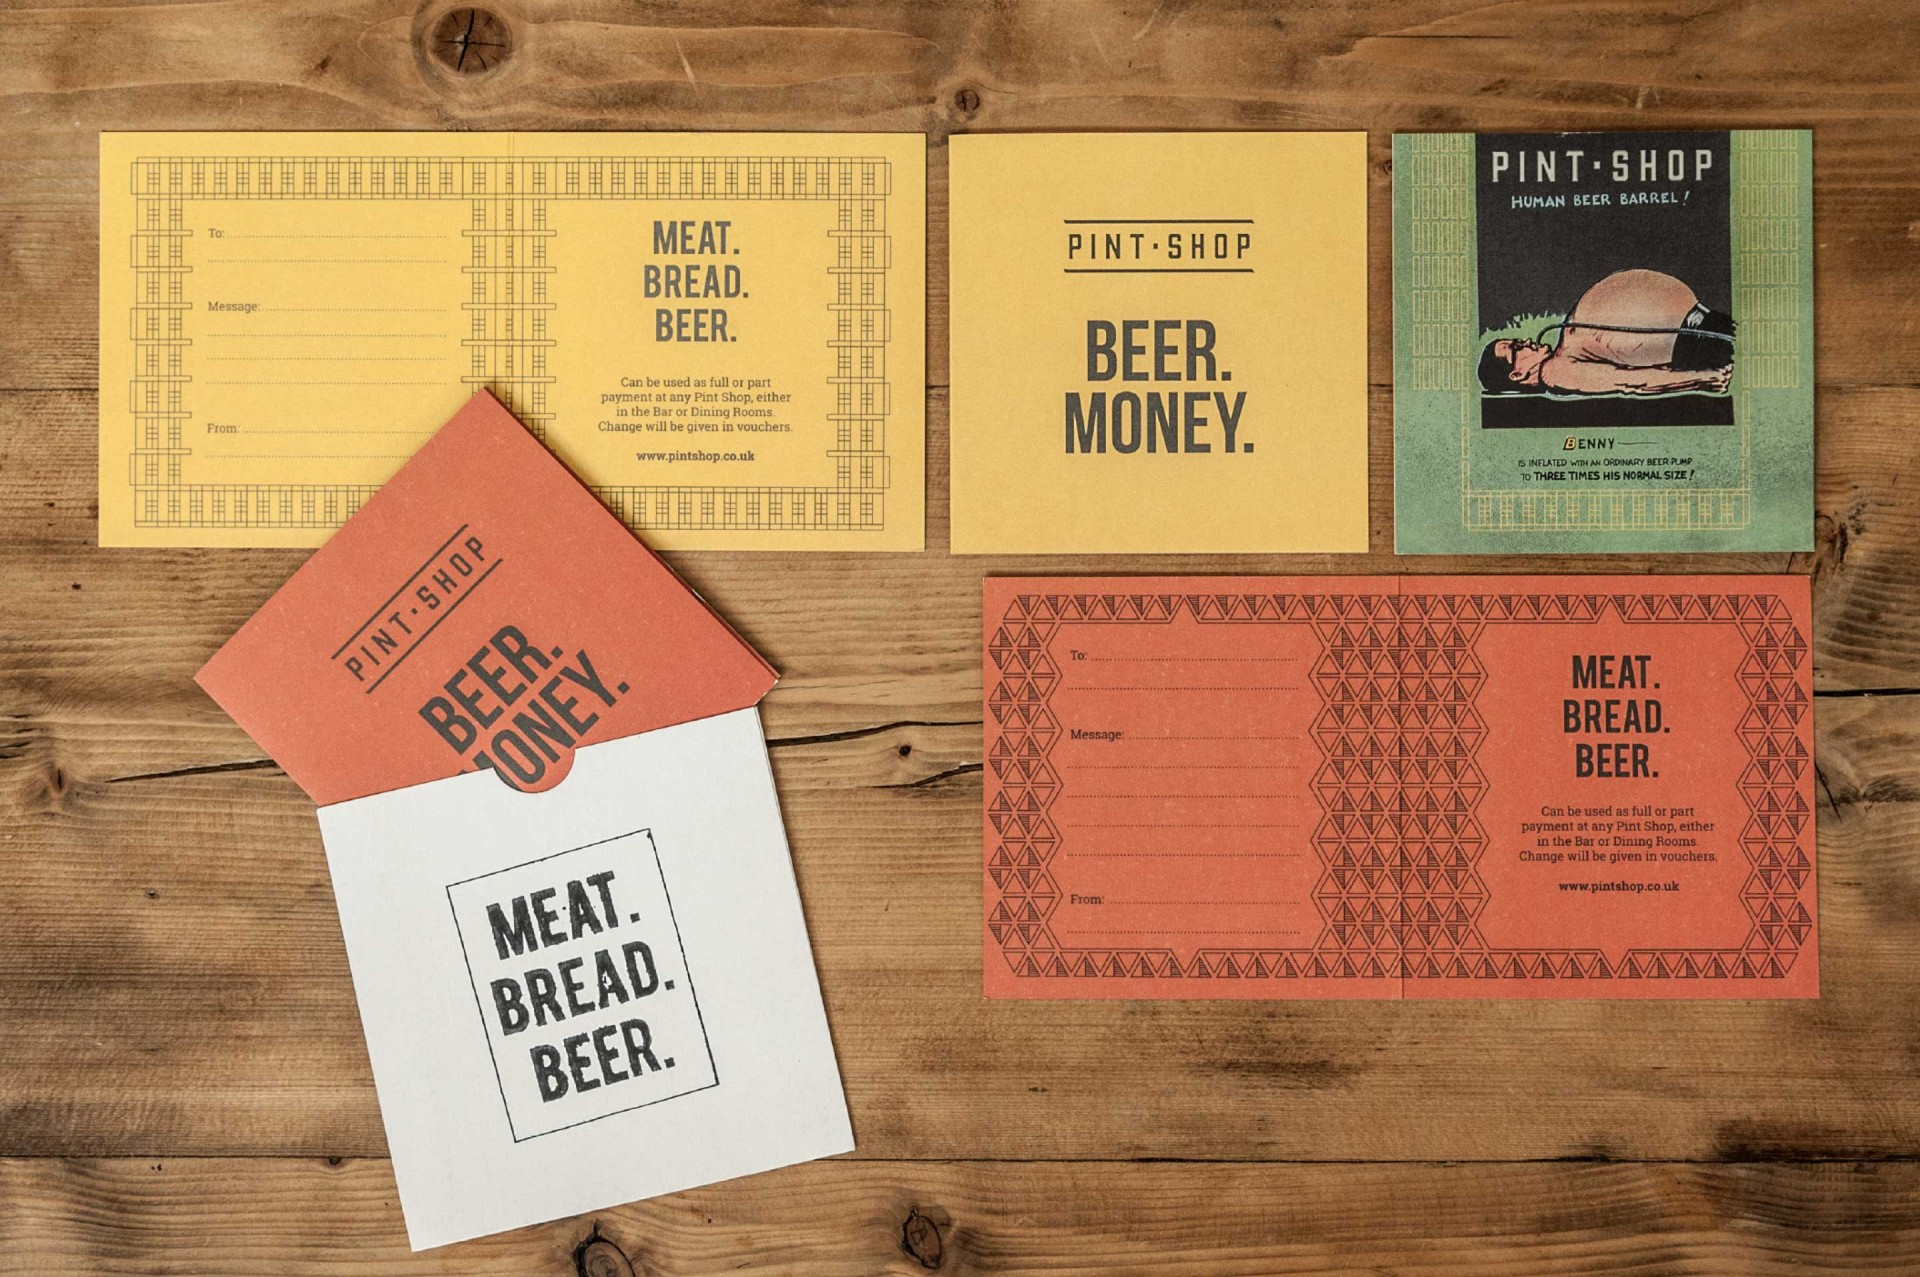 Flat lay on a wooden background of various pieces of marketing collateral for Pint Shop, designed by SAINT Design.